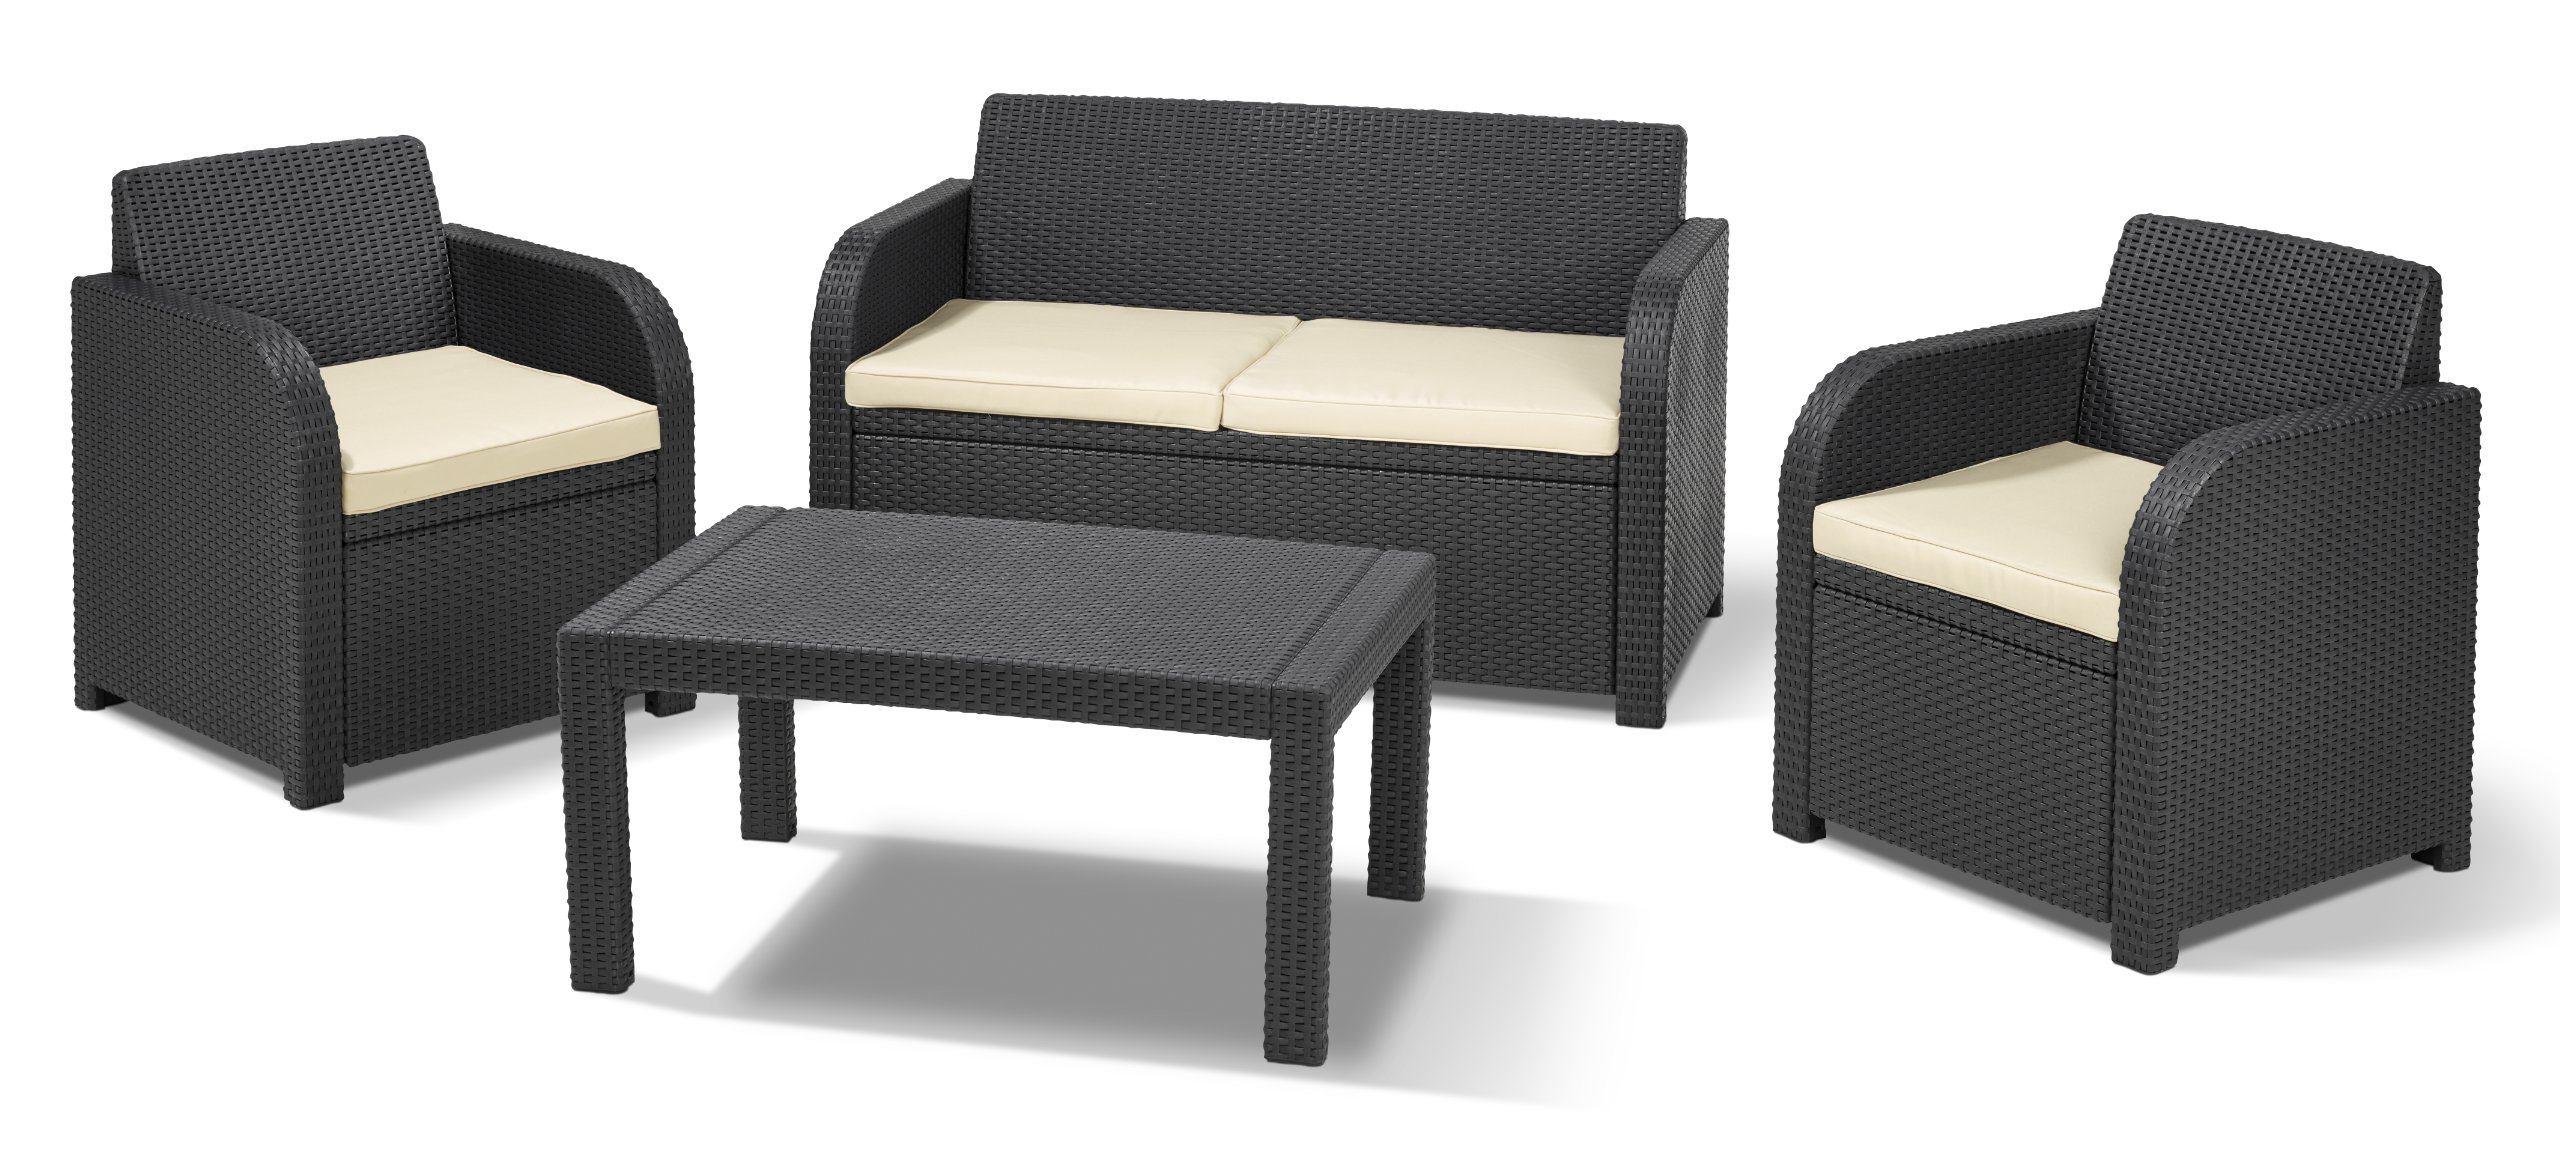 rattan sofa sets. Black Bedroom Furniture Sets. Home Design Ideas